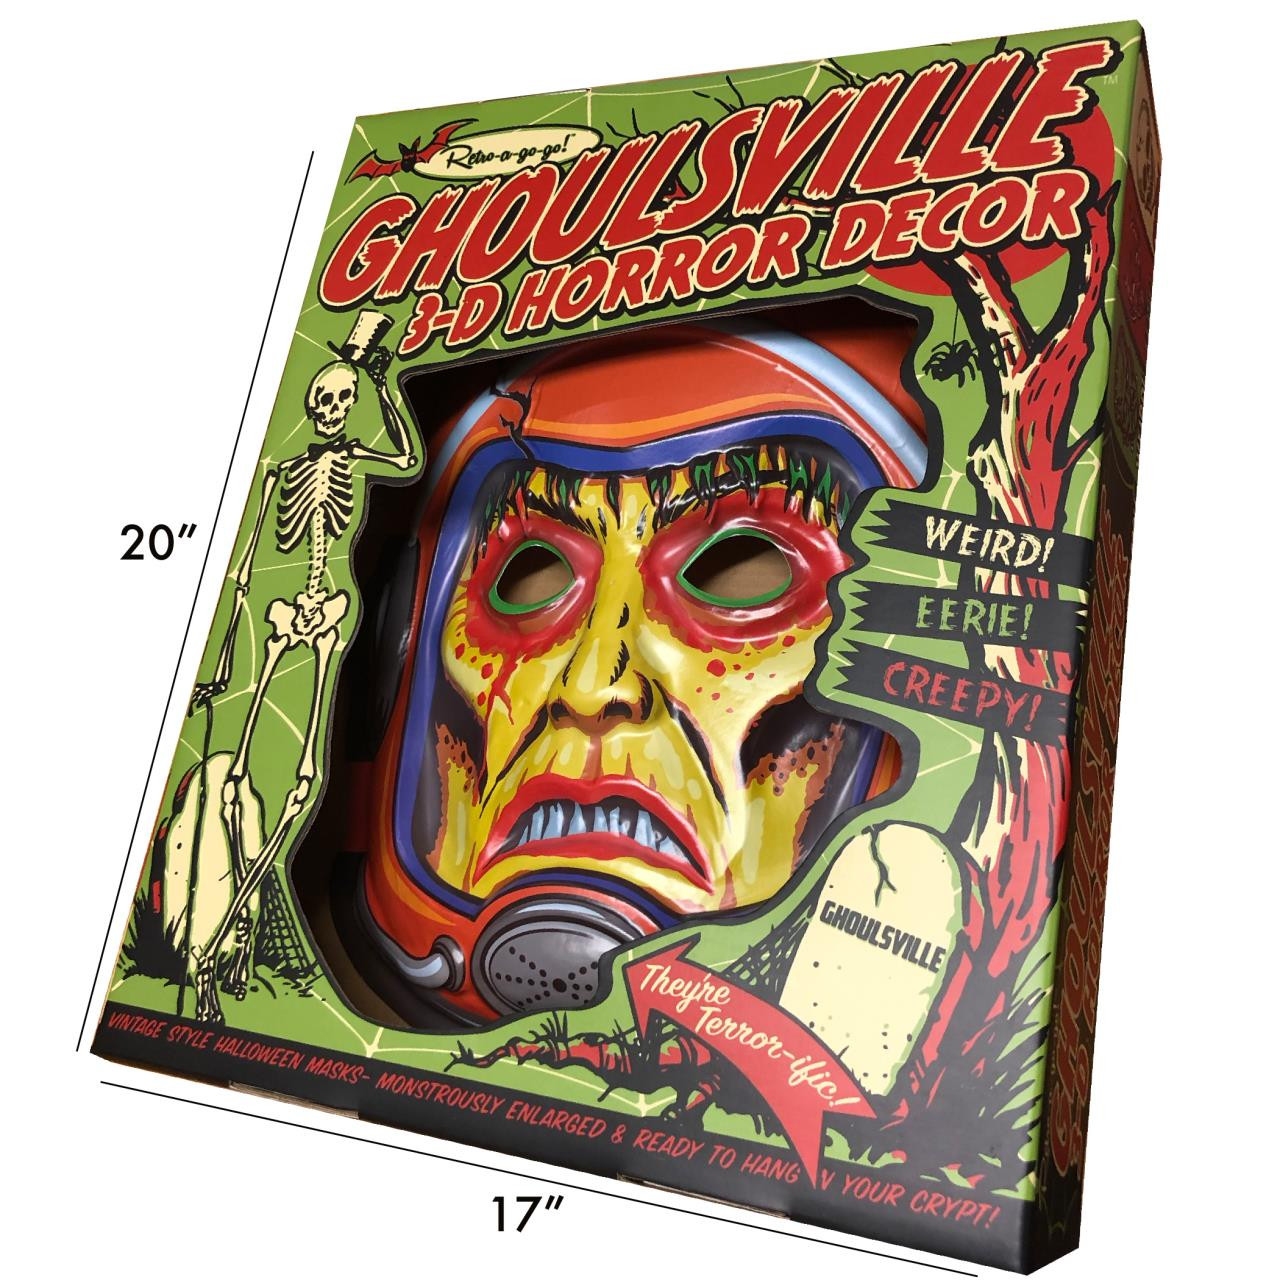 Space Zombie 2001 3-D Wall Decor* -